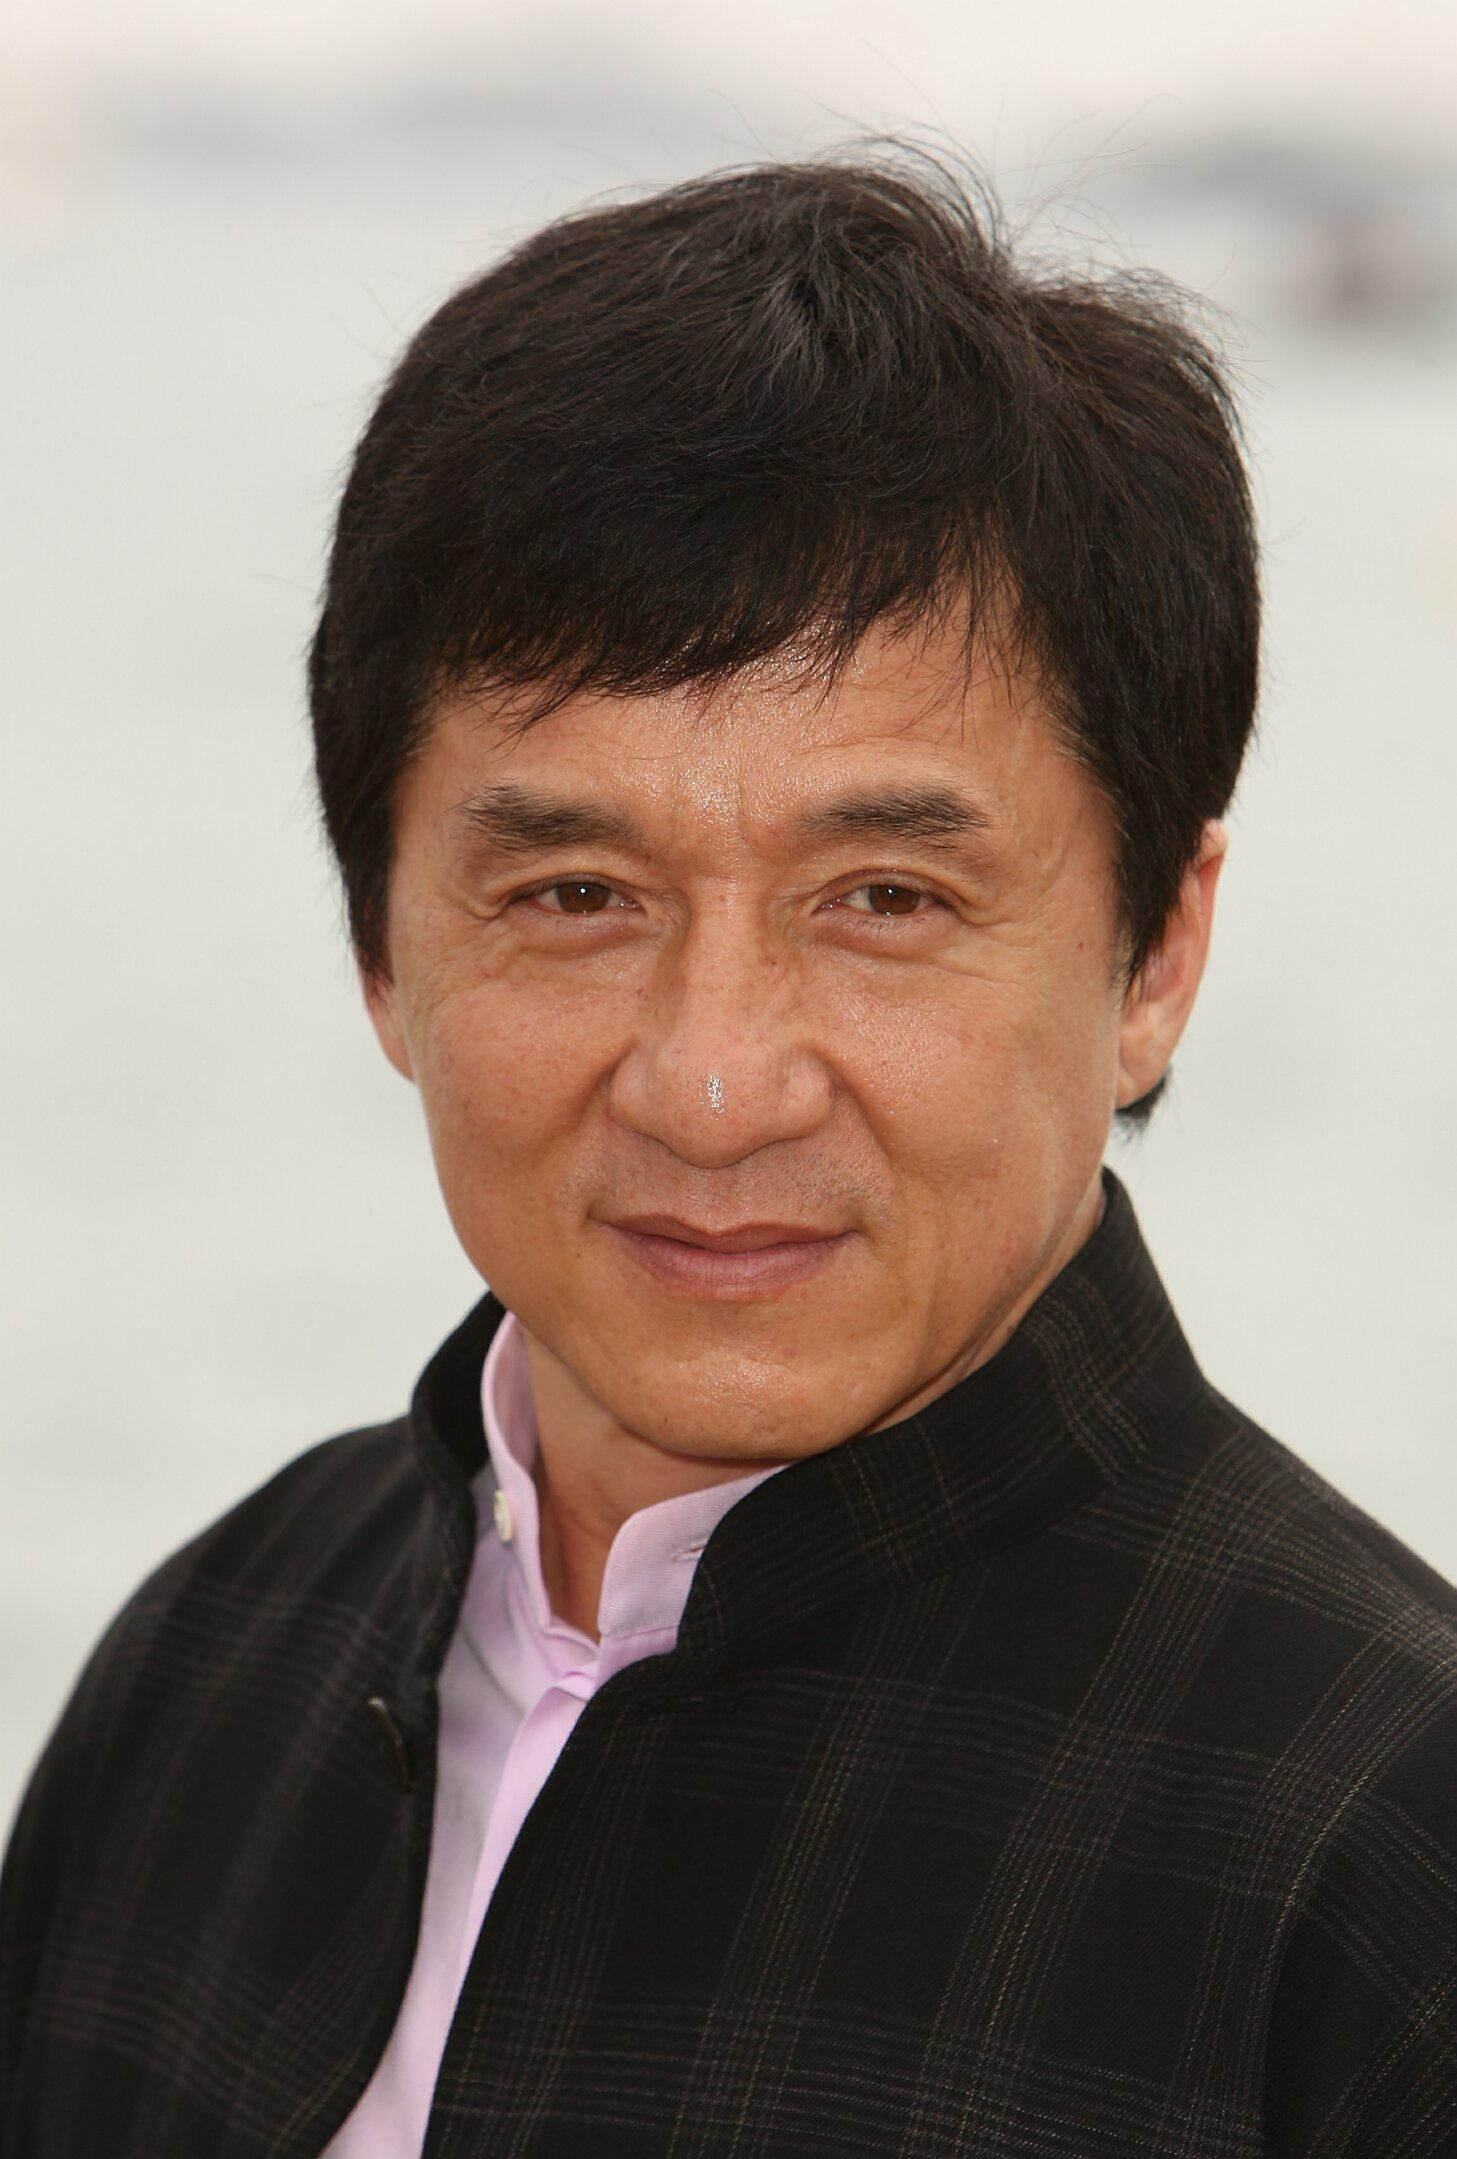 Jackie Chan | Celebrities | Pinterest | Famous faces and ...